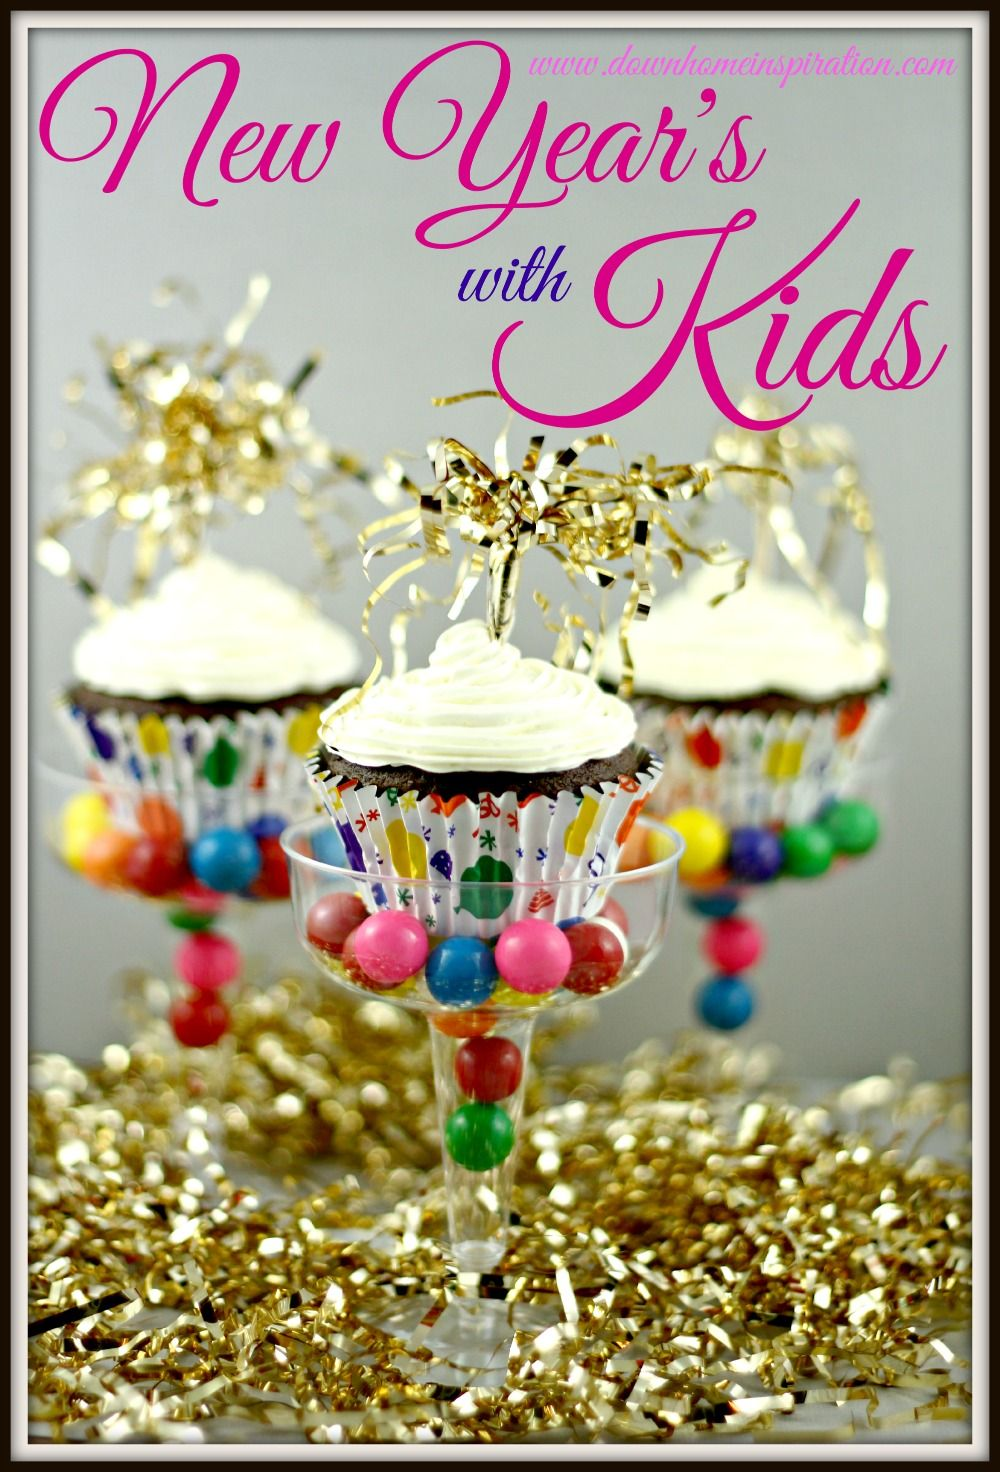 New Year's with Kids Holidays, Nye and Party time